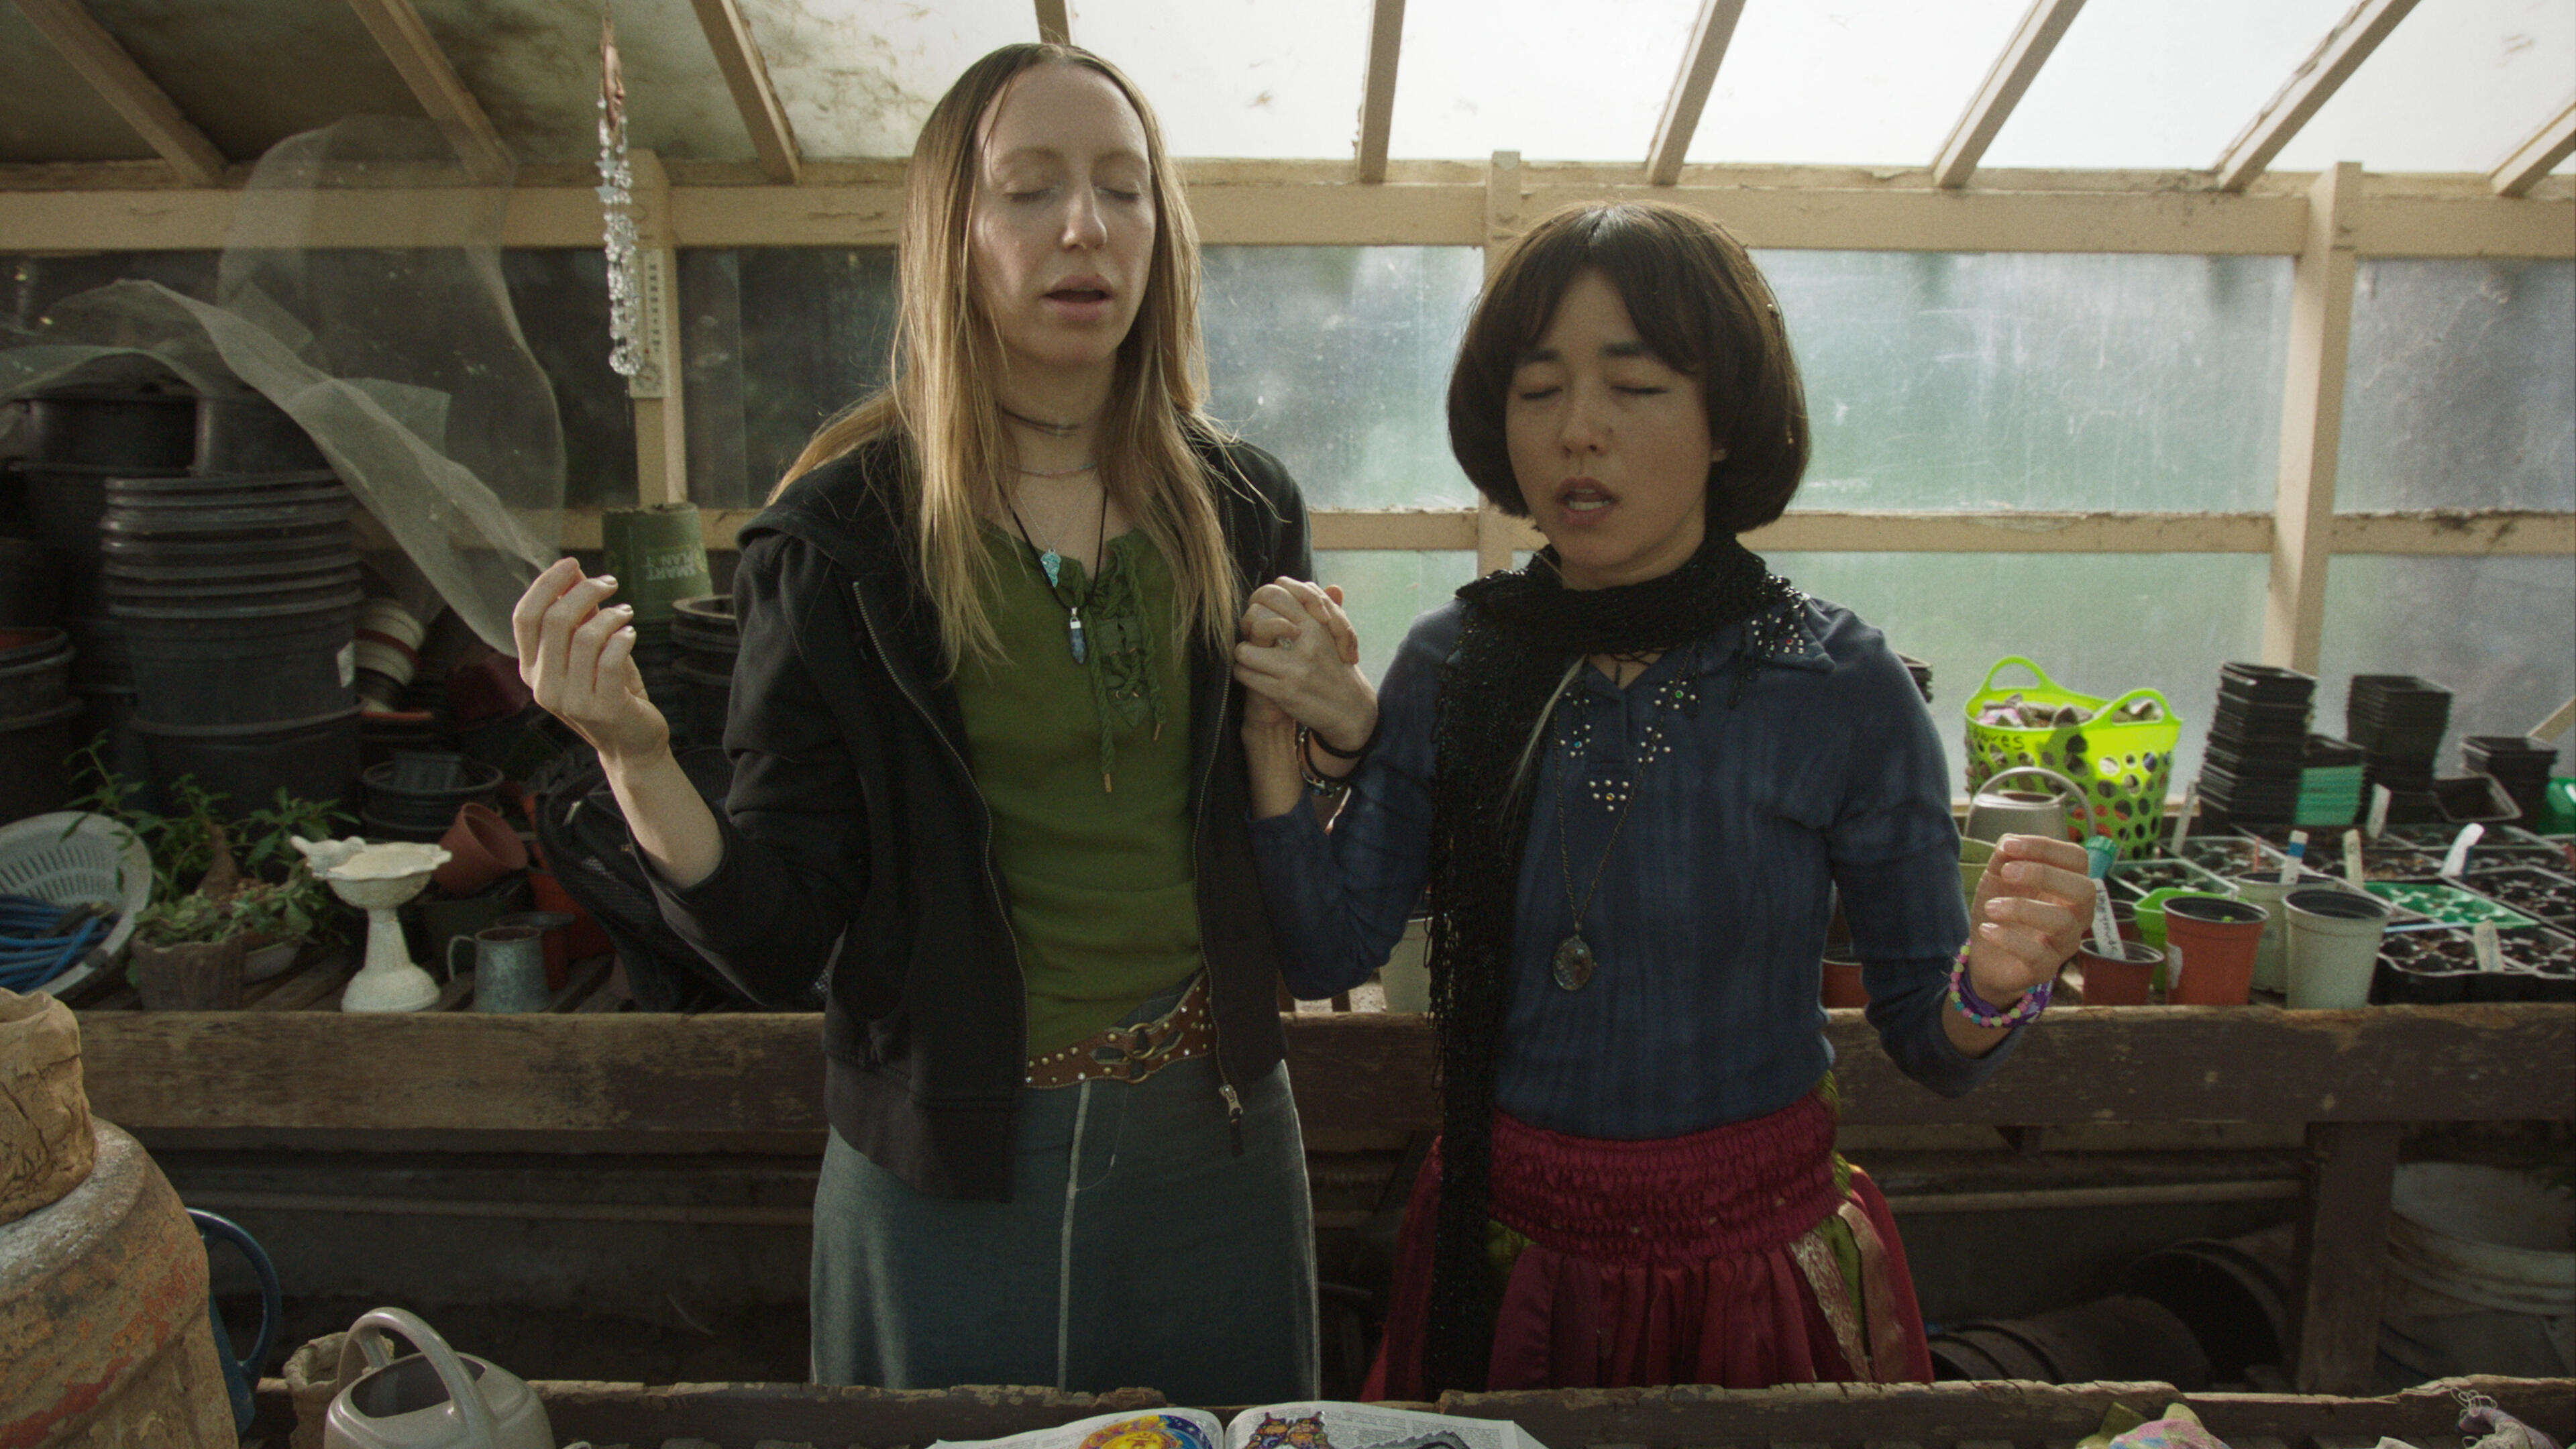 PEN15 harnesses the power of witchcraft in the face of adolescent anxiety